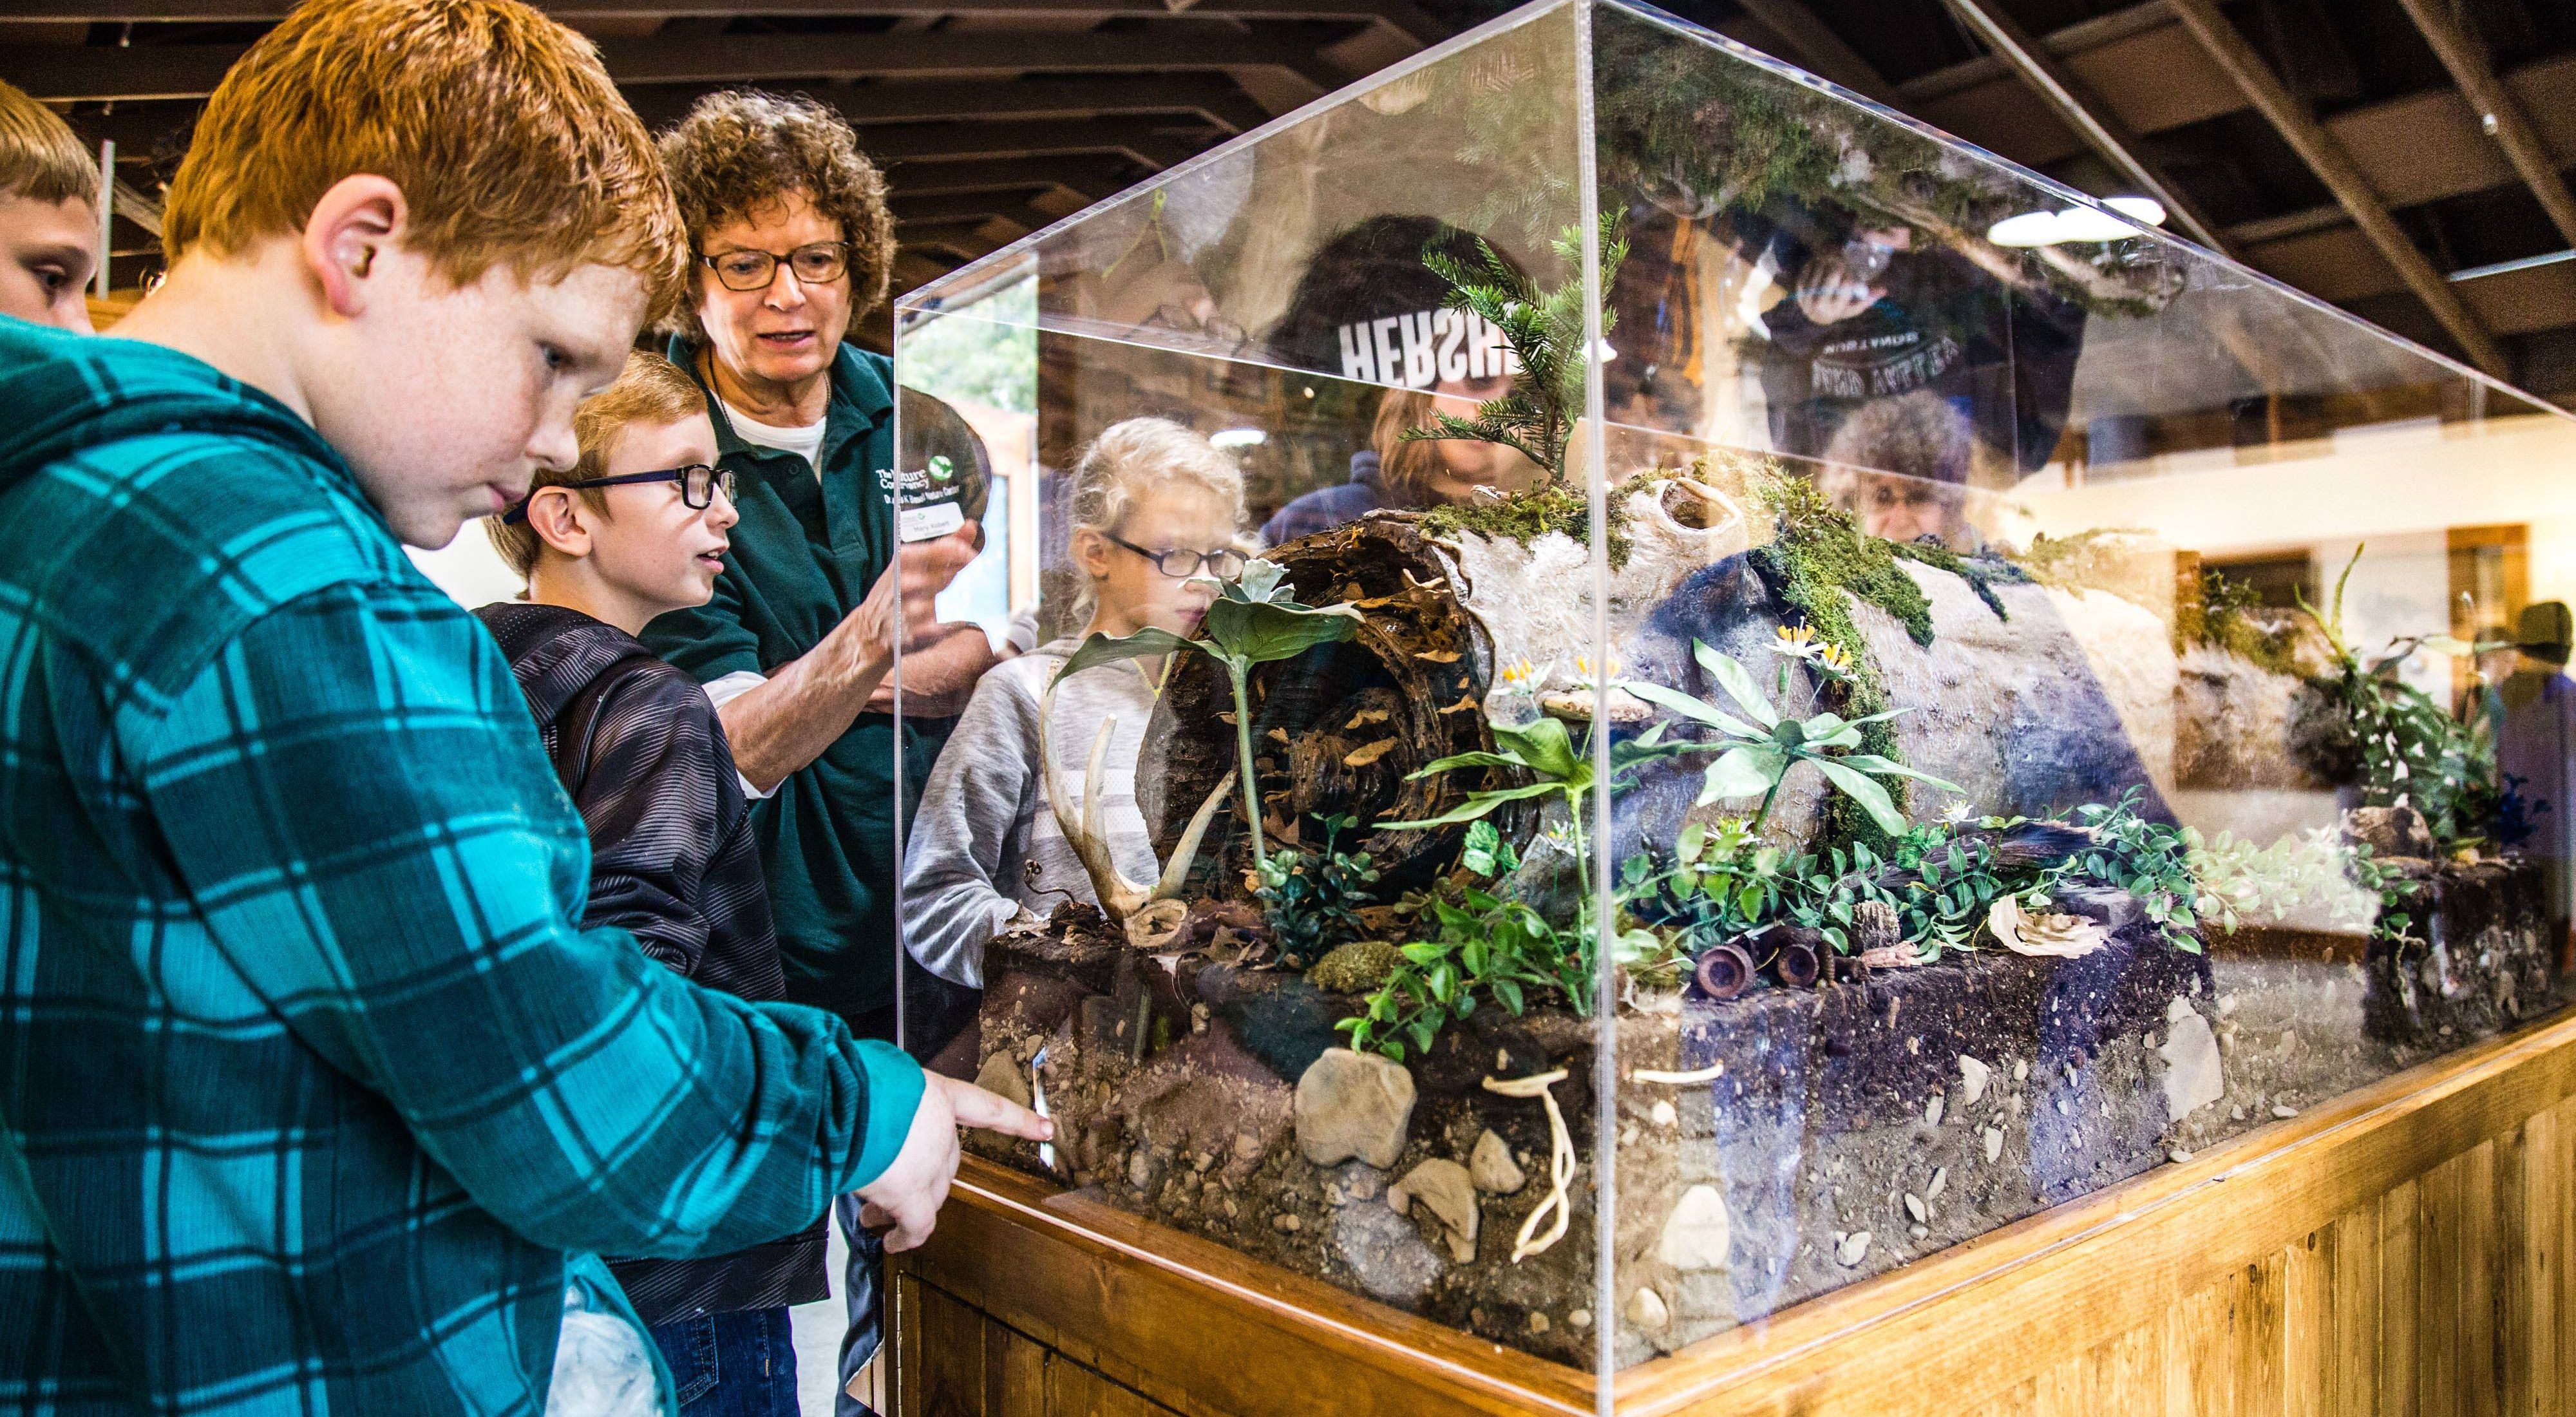 There are many educational displays to explore and ways to learn about nature in Ohio.